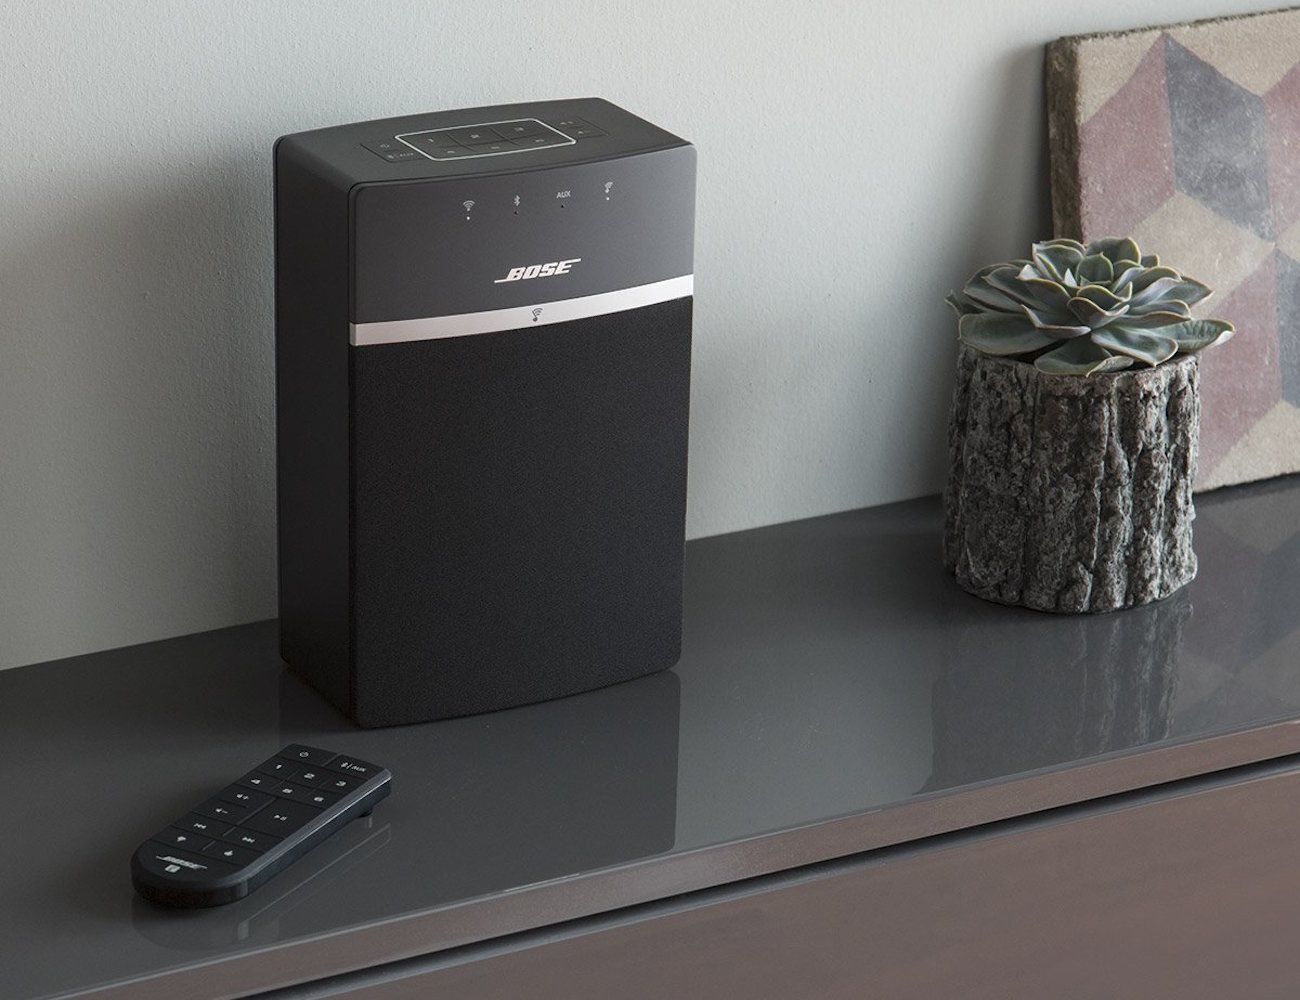 SoundTouch 10 Wireless Music System From Bose